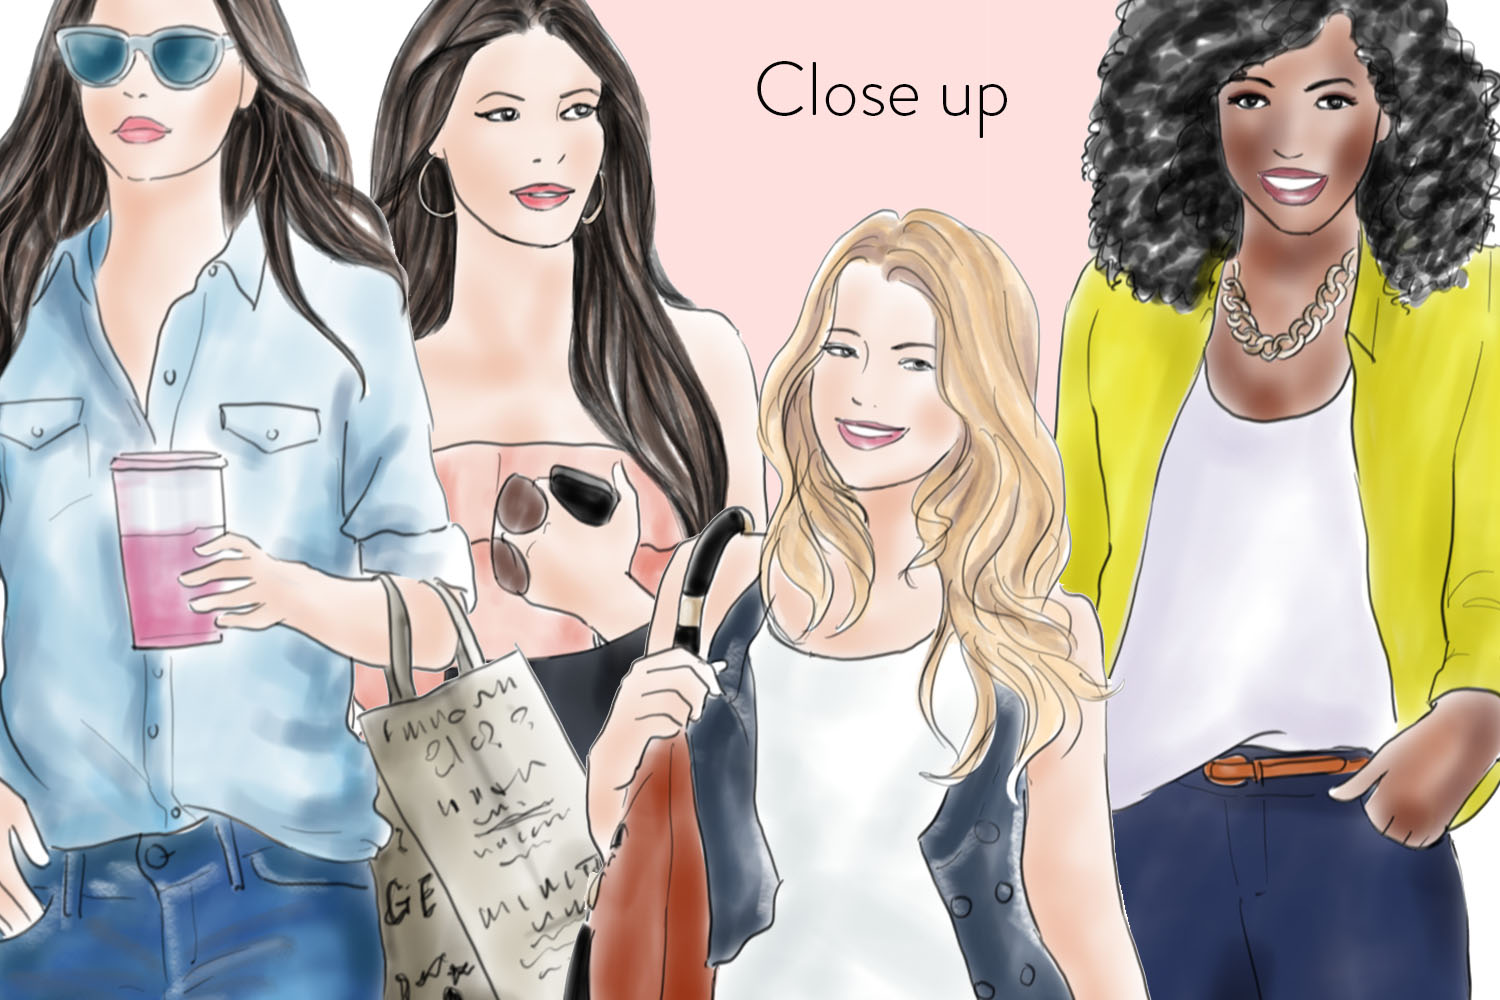 Watercolour fashion illustration clipart Shopping Girls - Assorted example image 3